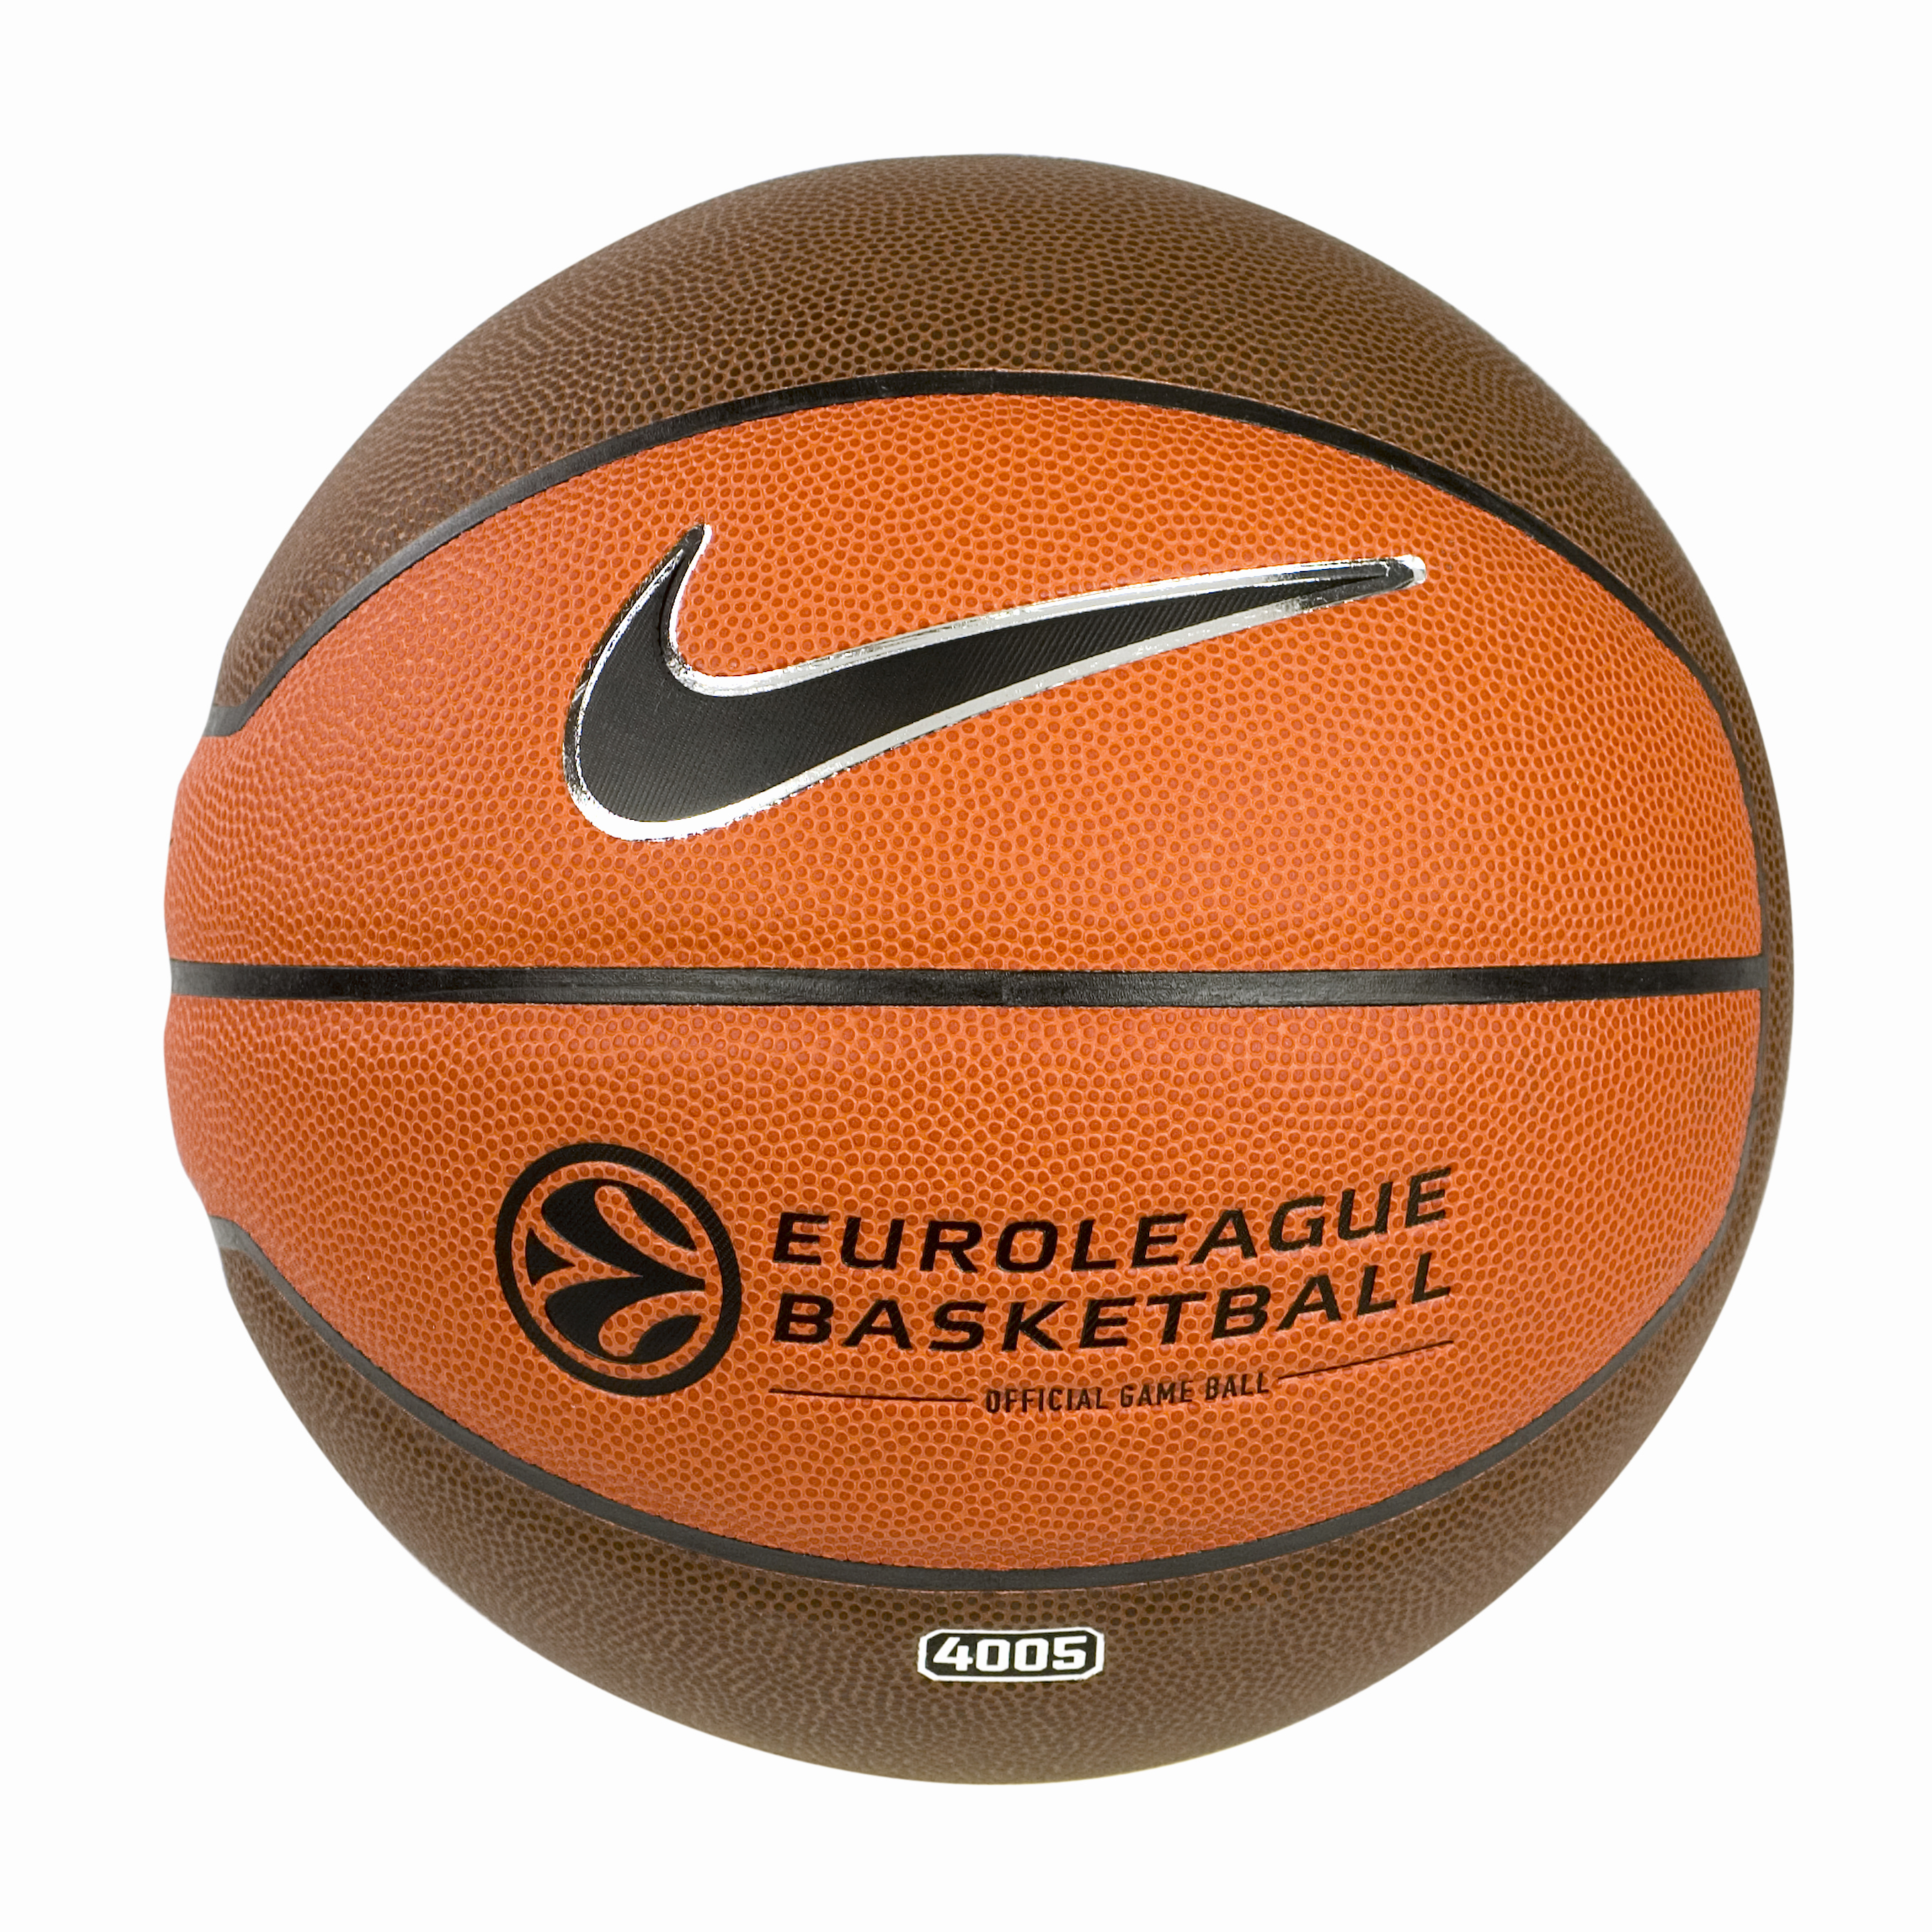 Euroleague Basketball Company